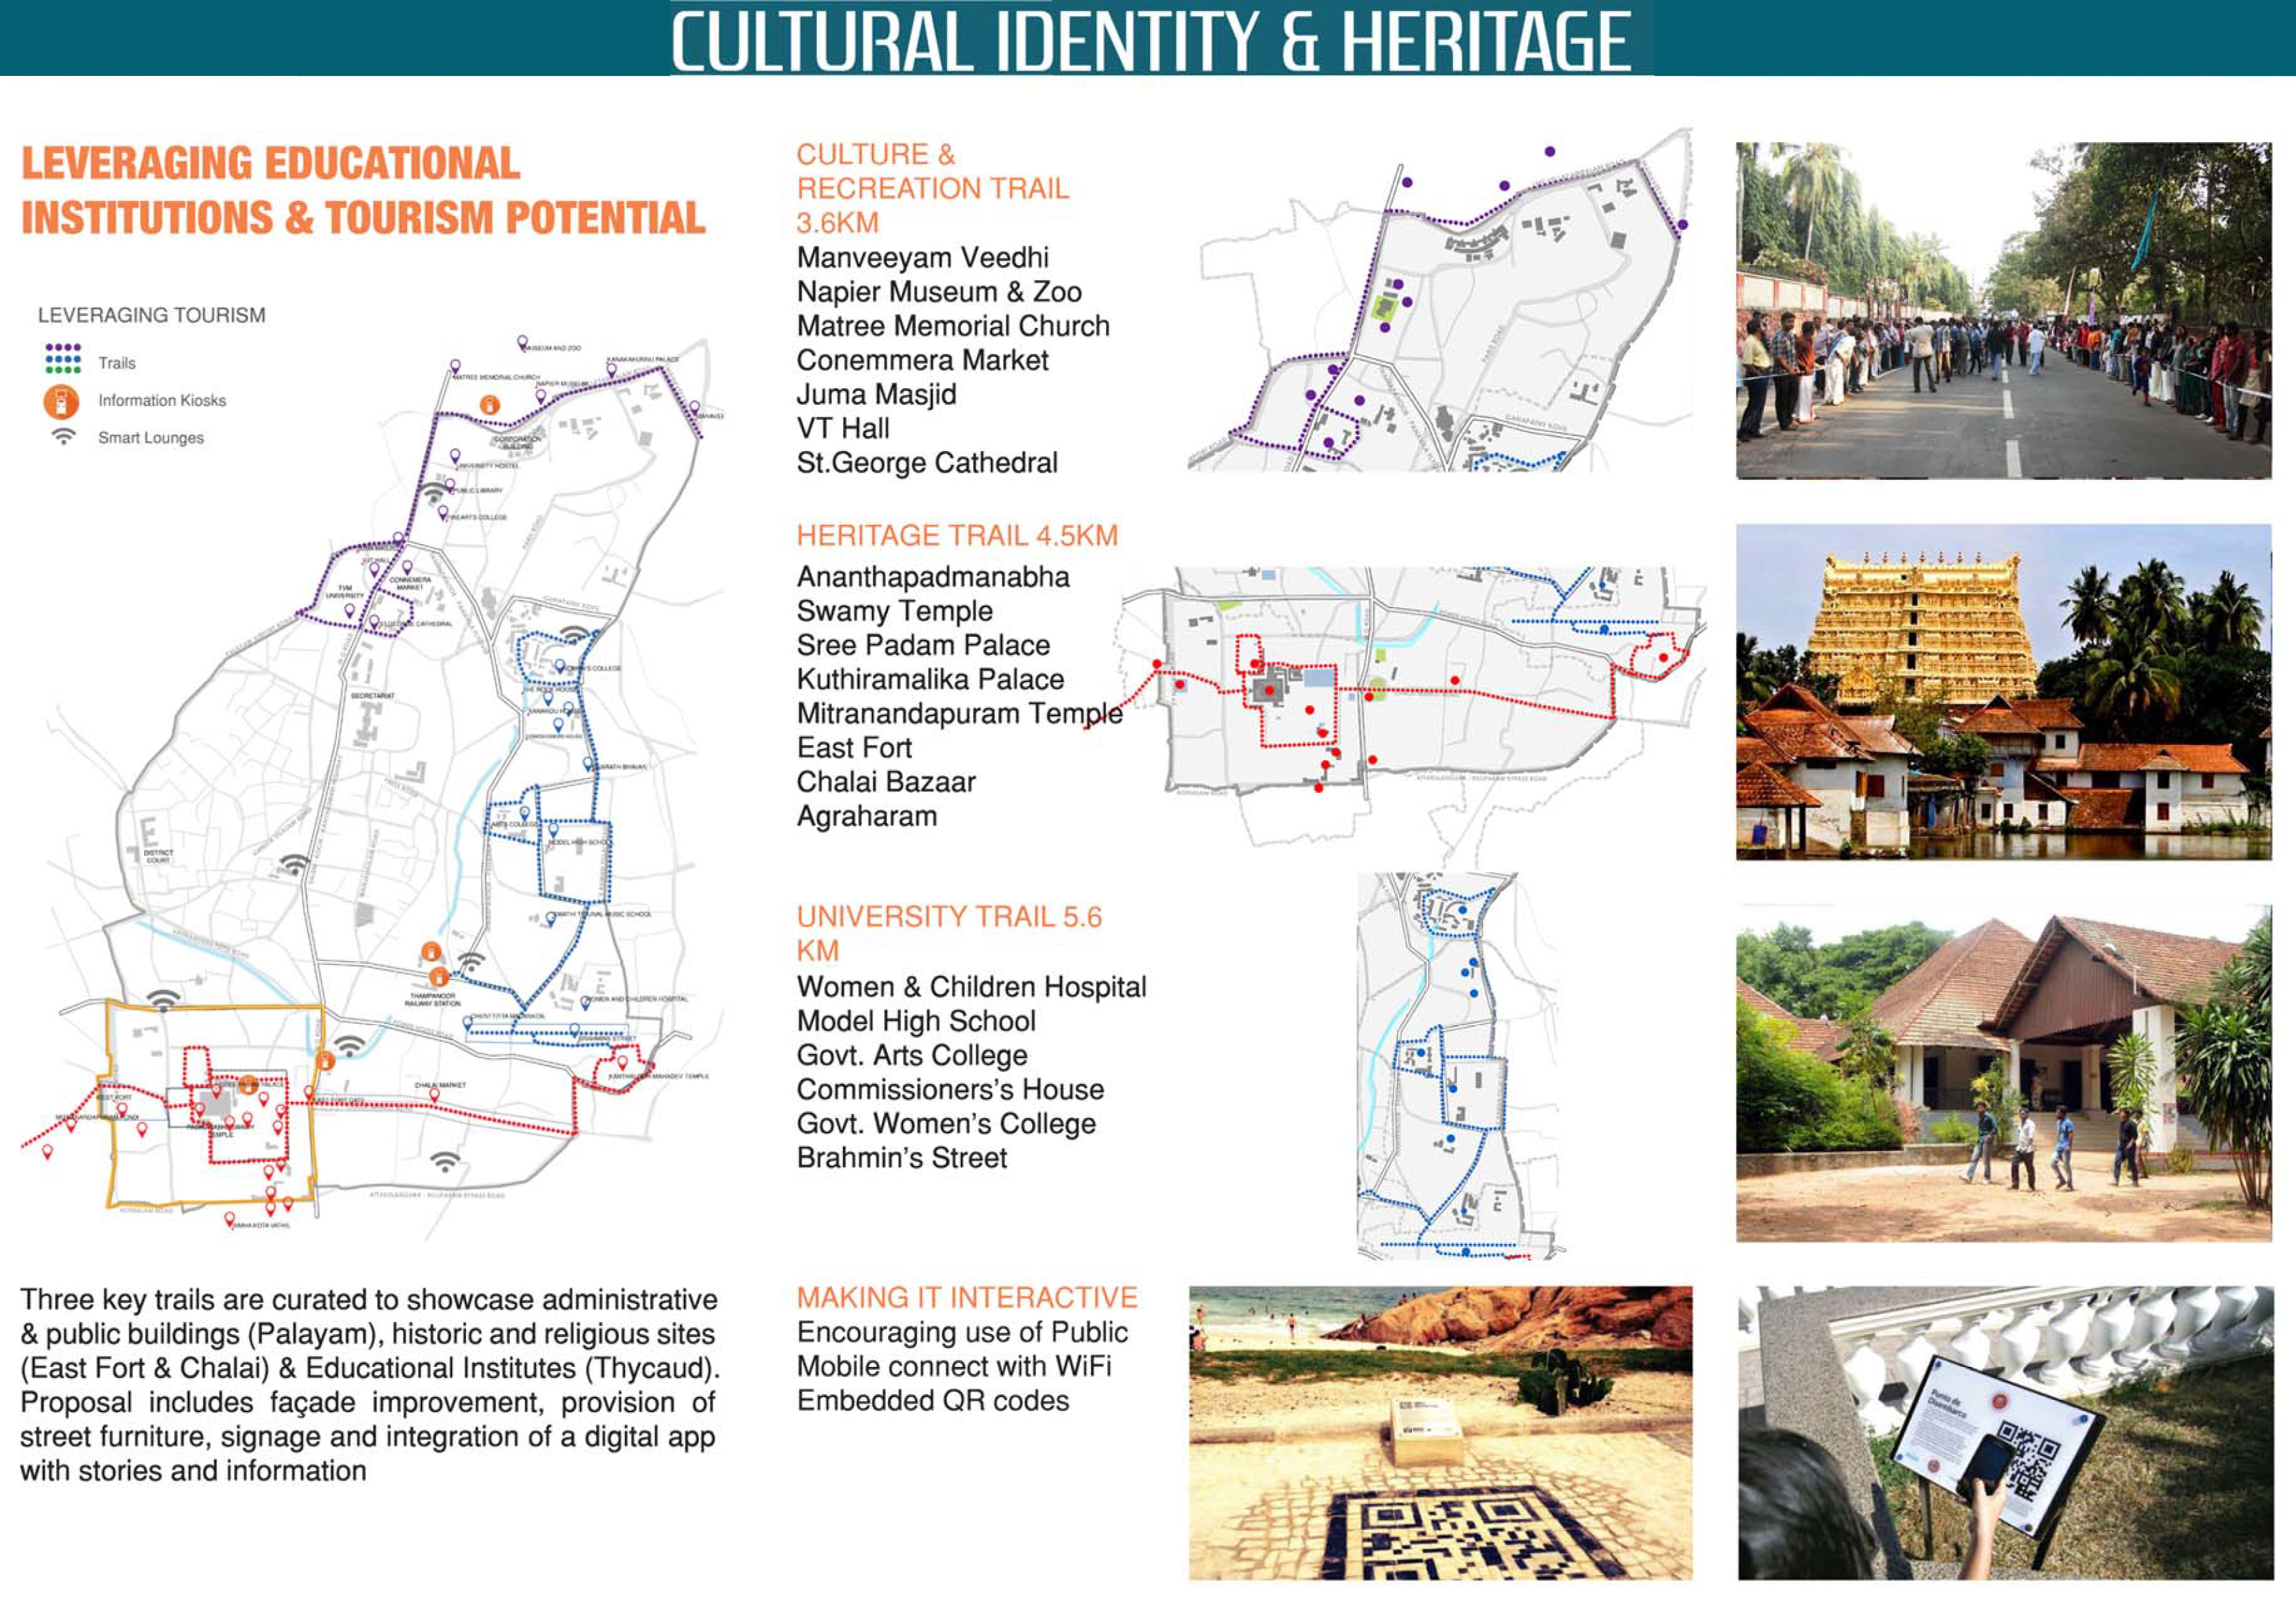 Cultural Identity & Heritage 2